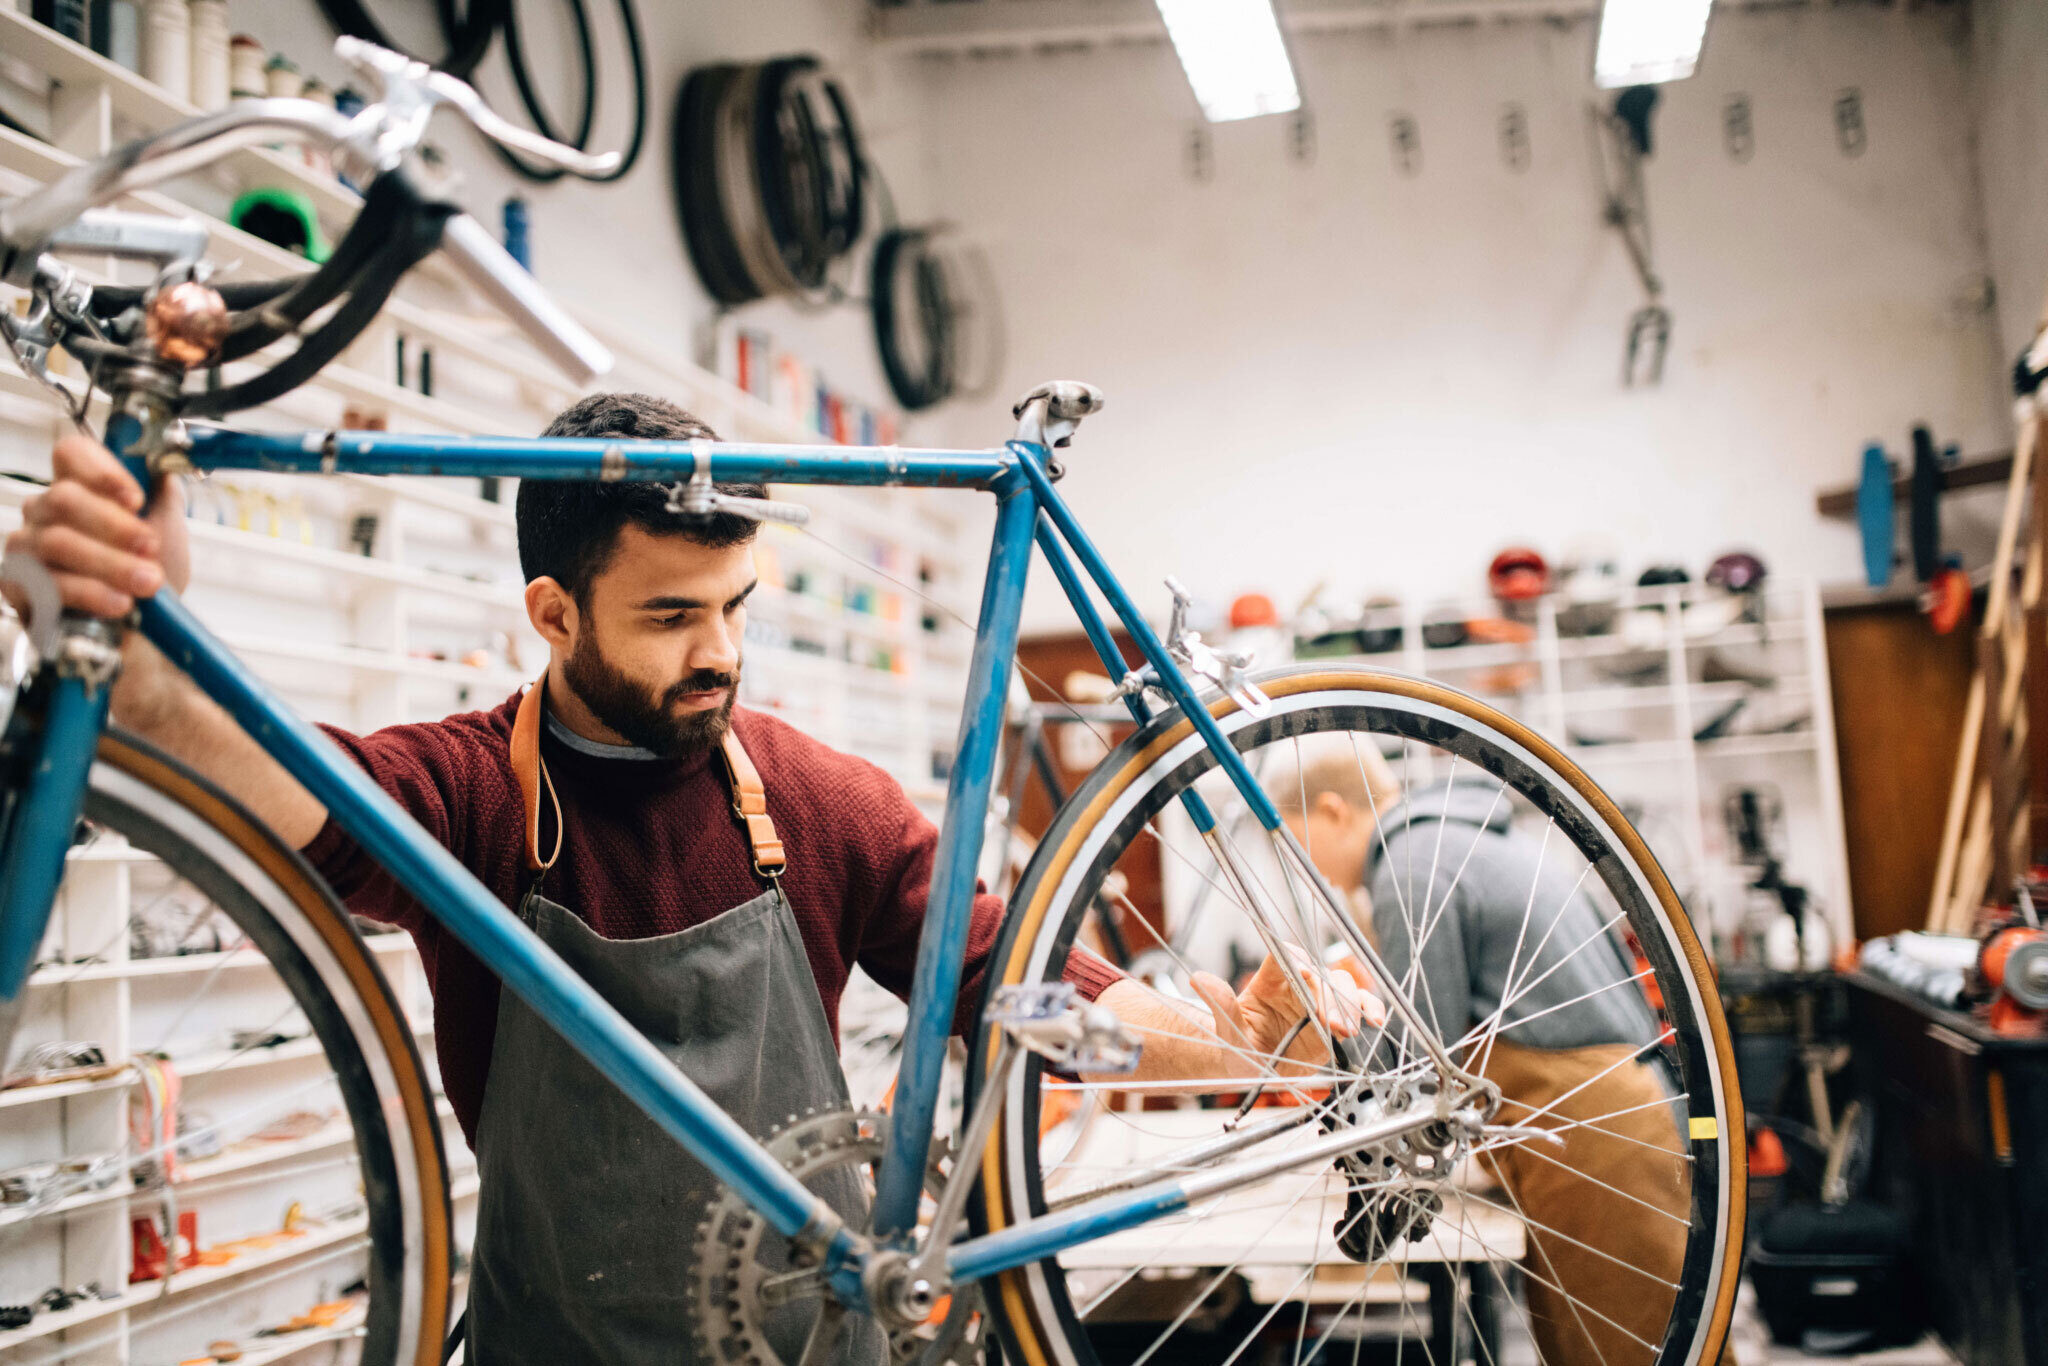 Young man fixing a bike in a bike shop